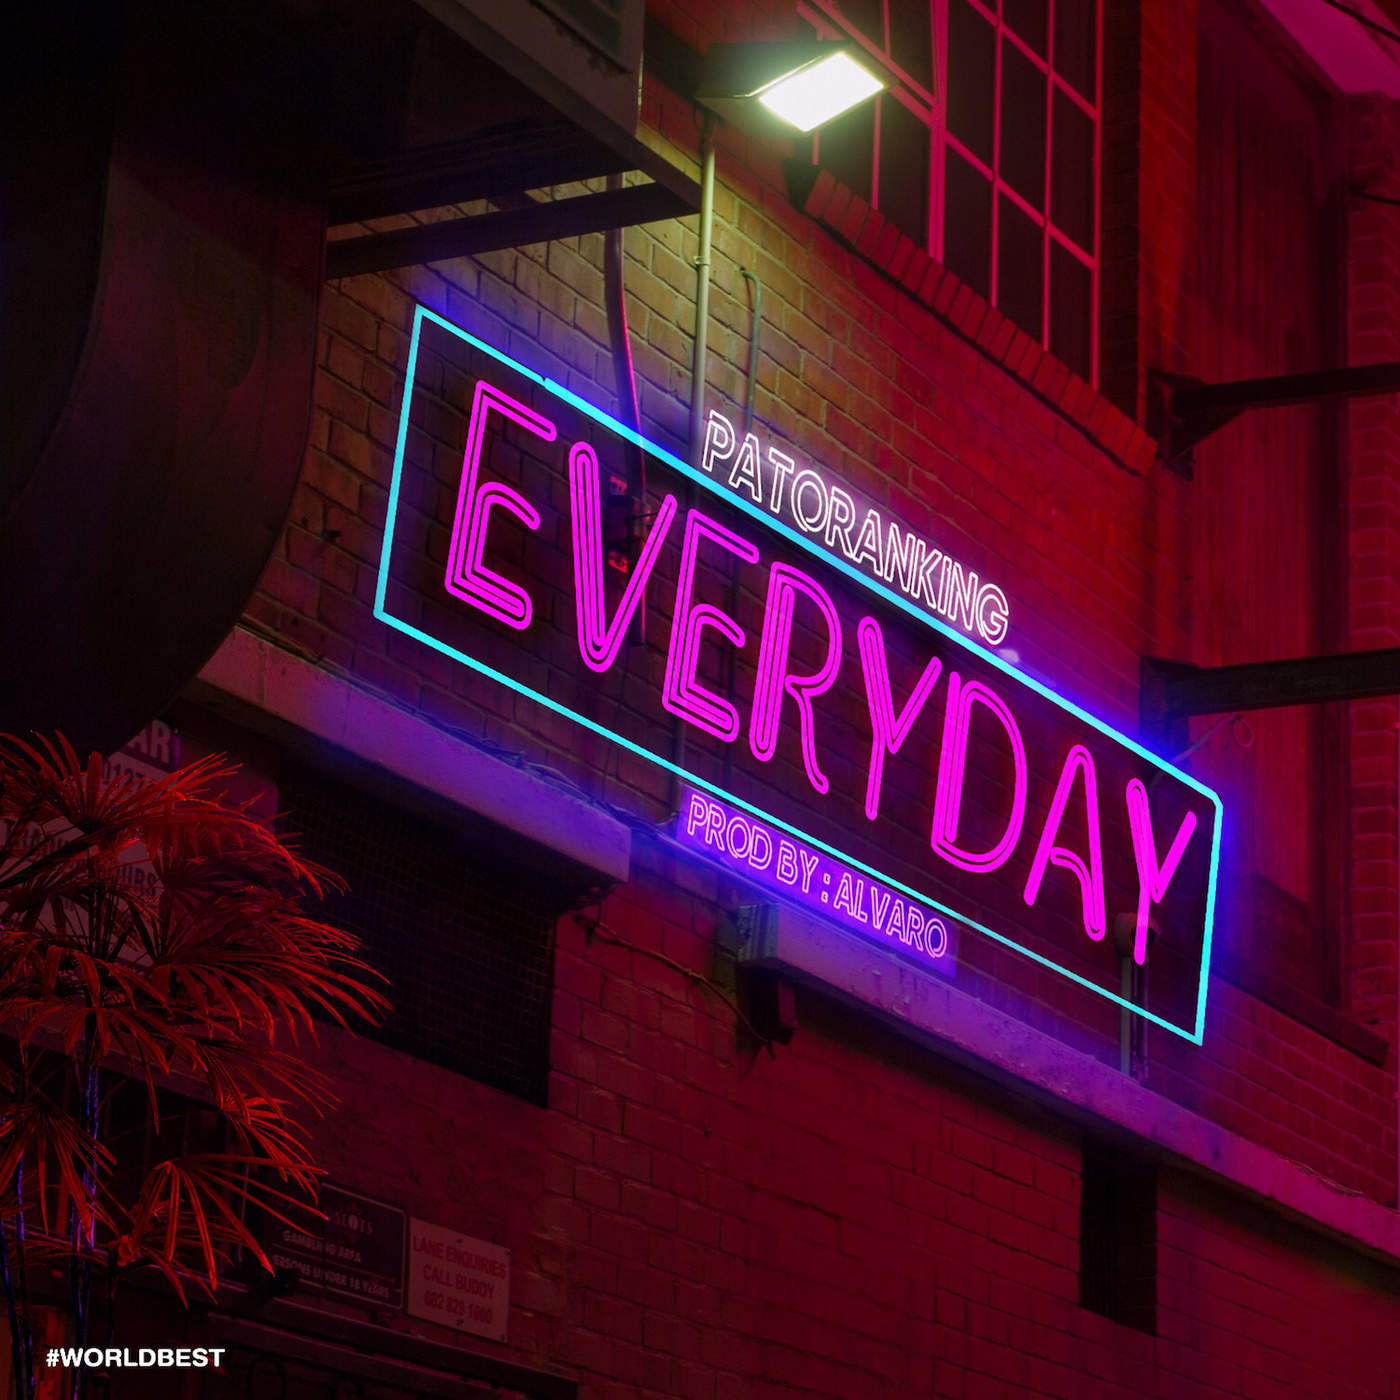 Patoranking Everyday Mp3 Download